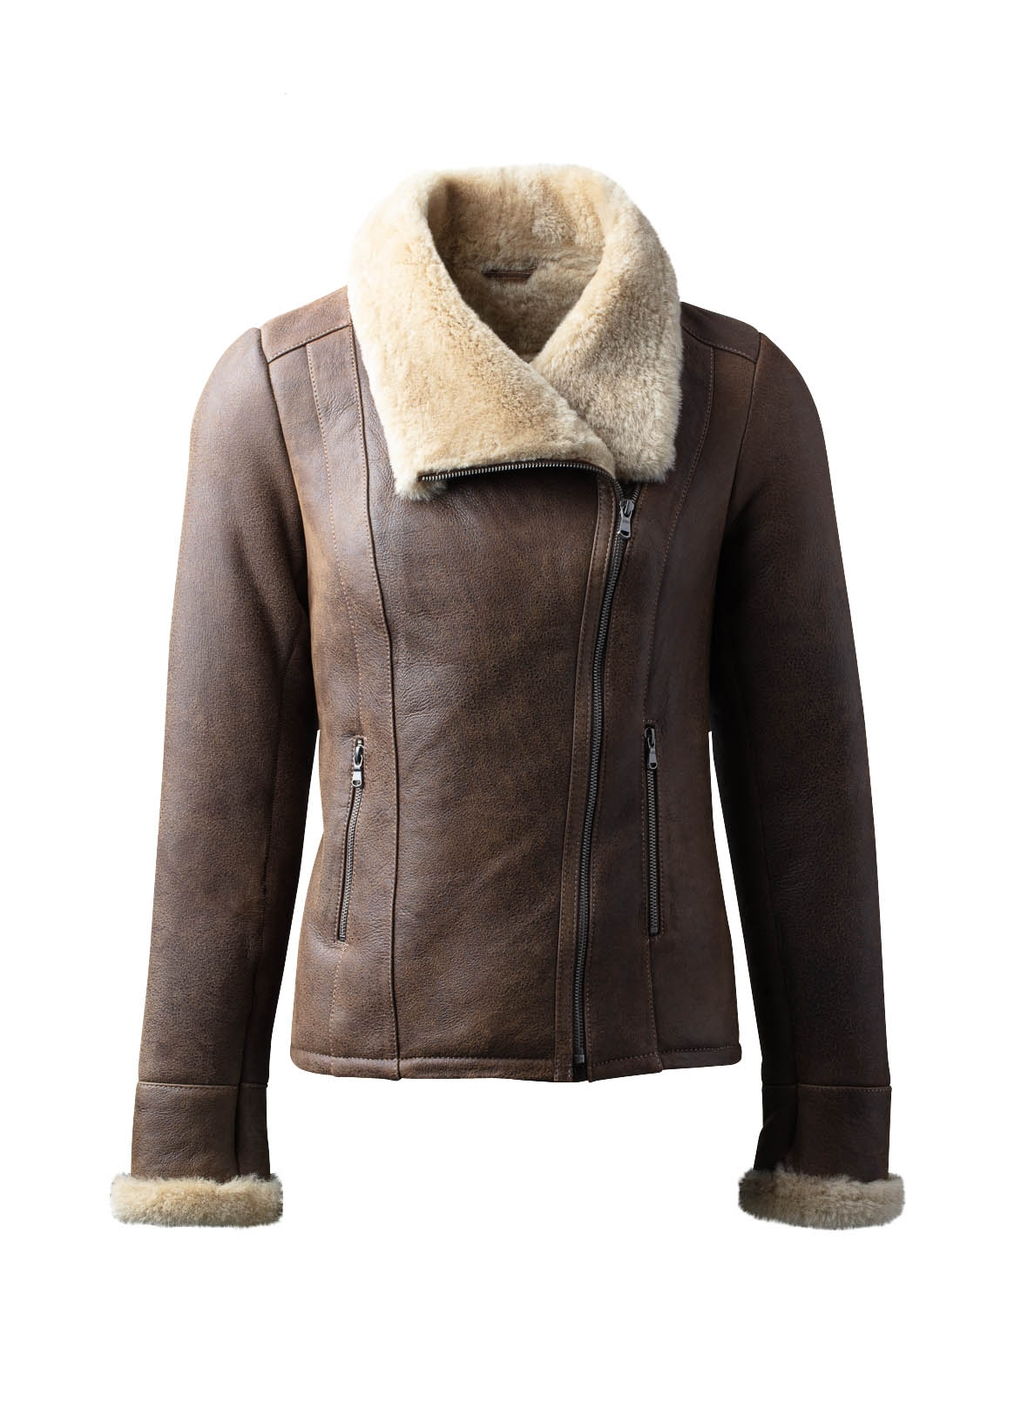 Allerby II Sheepskin Aviator Jacket in Tan